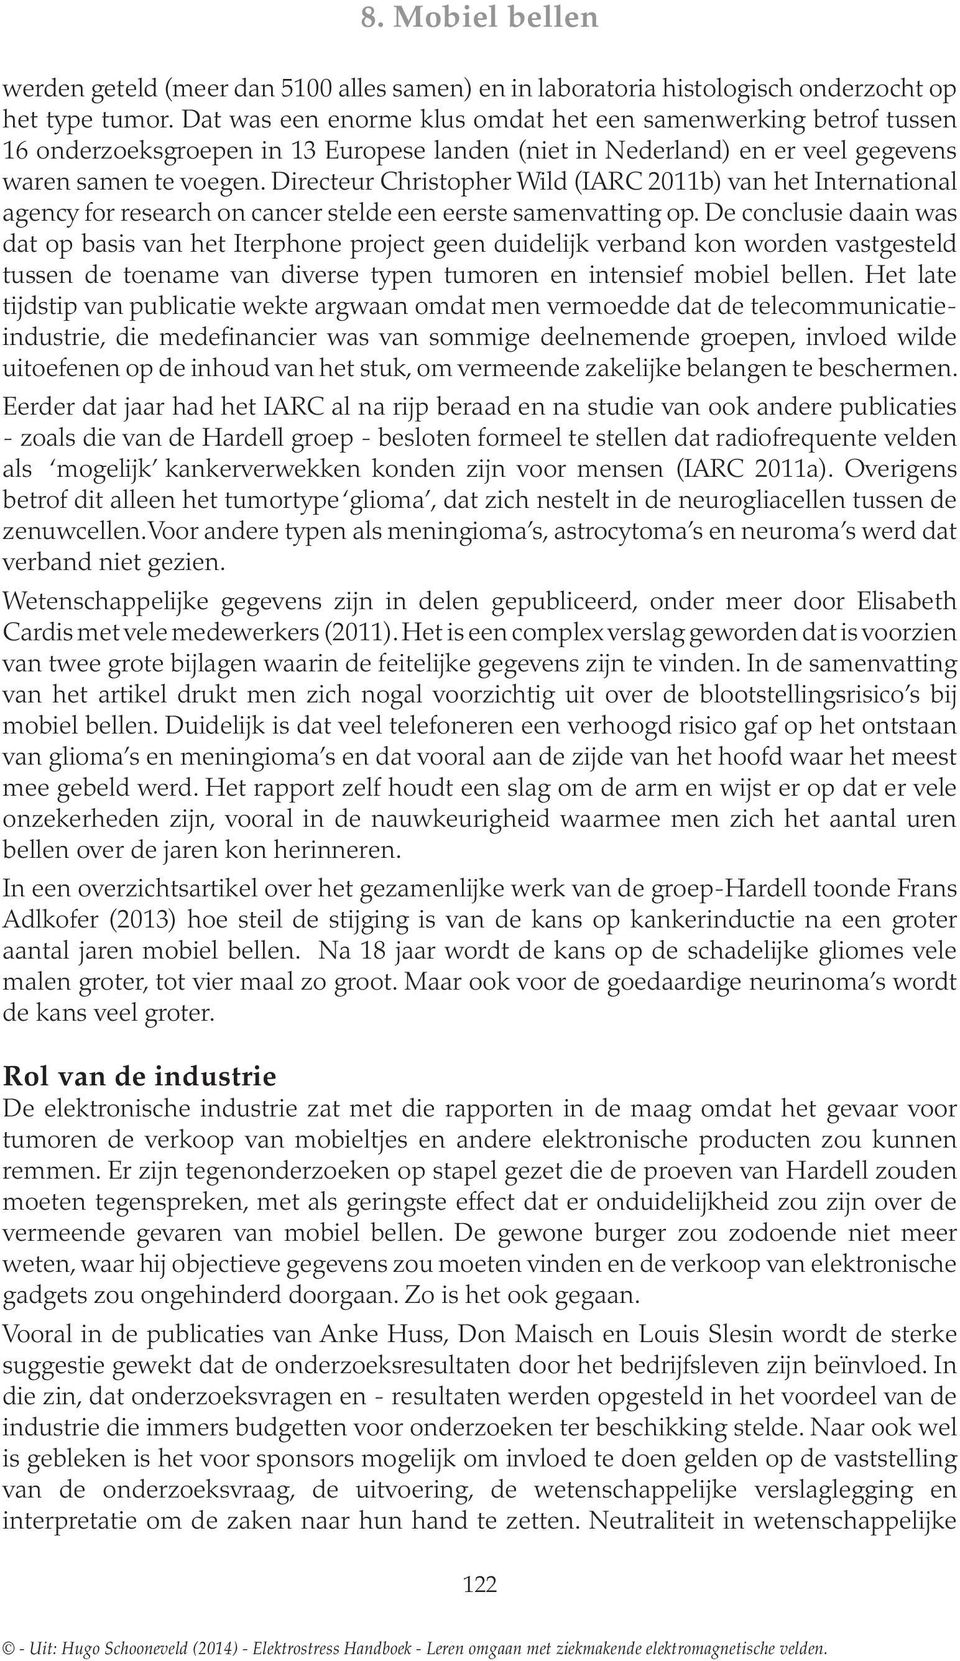 Directeur Christopher Wild (IARC 2011b) International agency for research on cancer stel eerste samenvatting op.